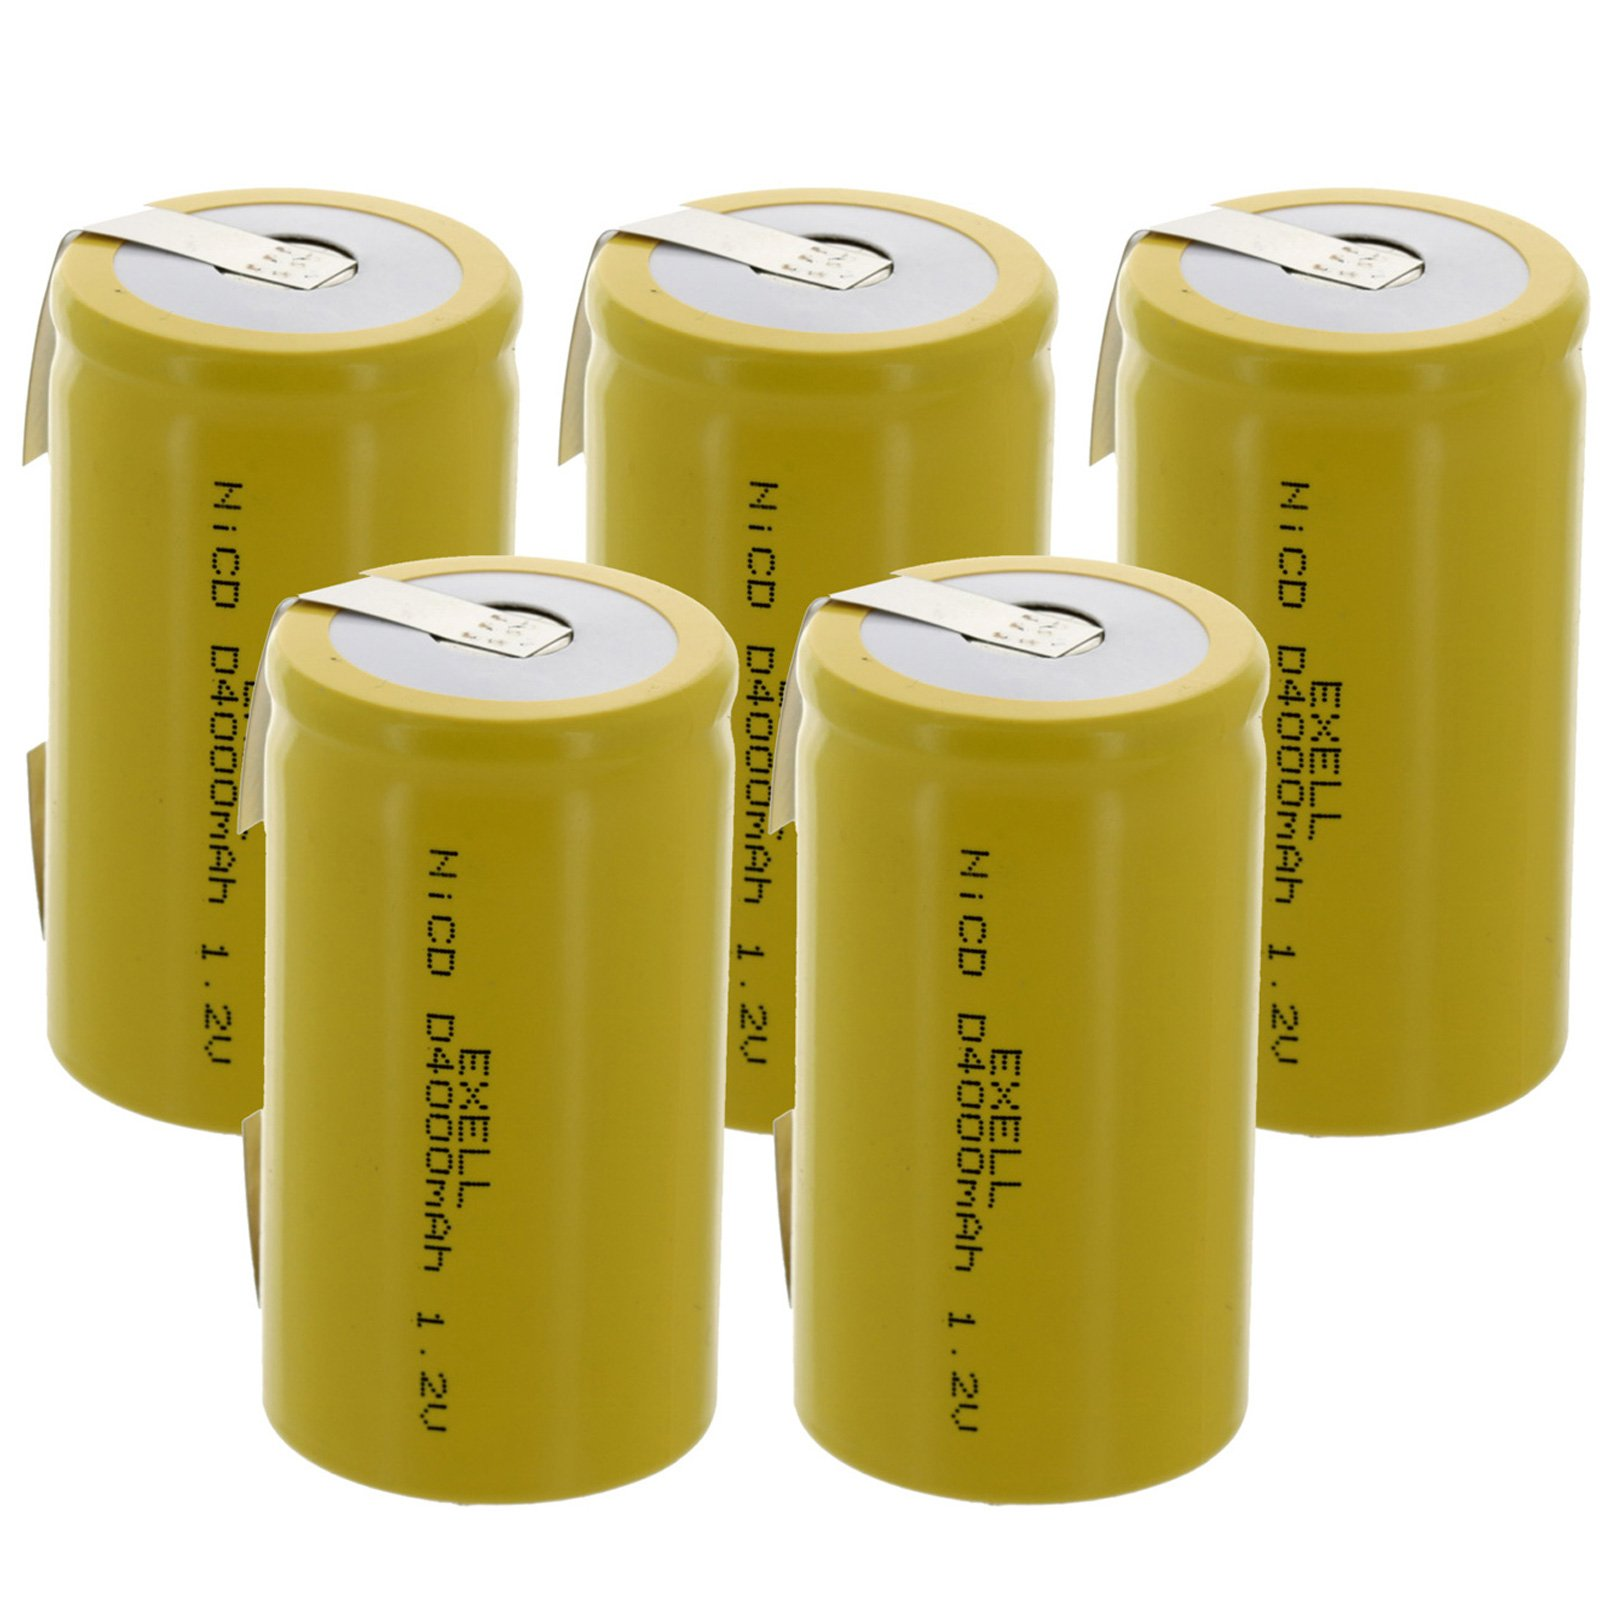 5x Exell D Size 1.2V 4000mAh NiCD Rechargeable Batteries with Tabs for high power static applications (Telecoms, UPS and Smart grid), electric mopeds, meters, radios, RC devices, electric tools